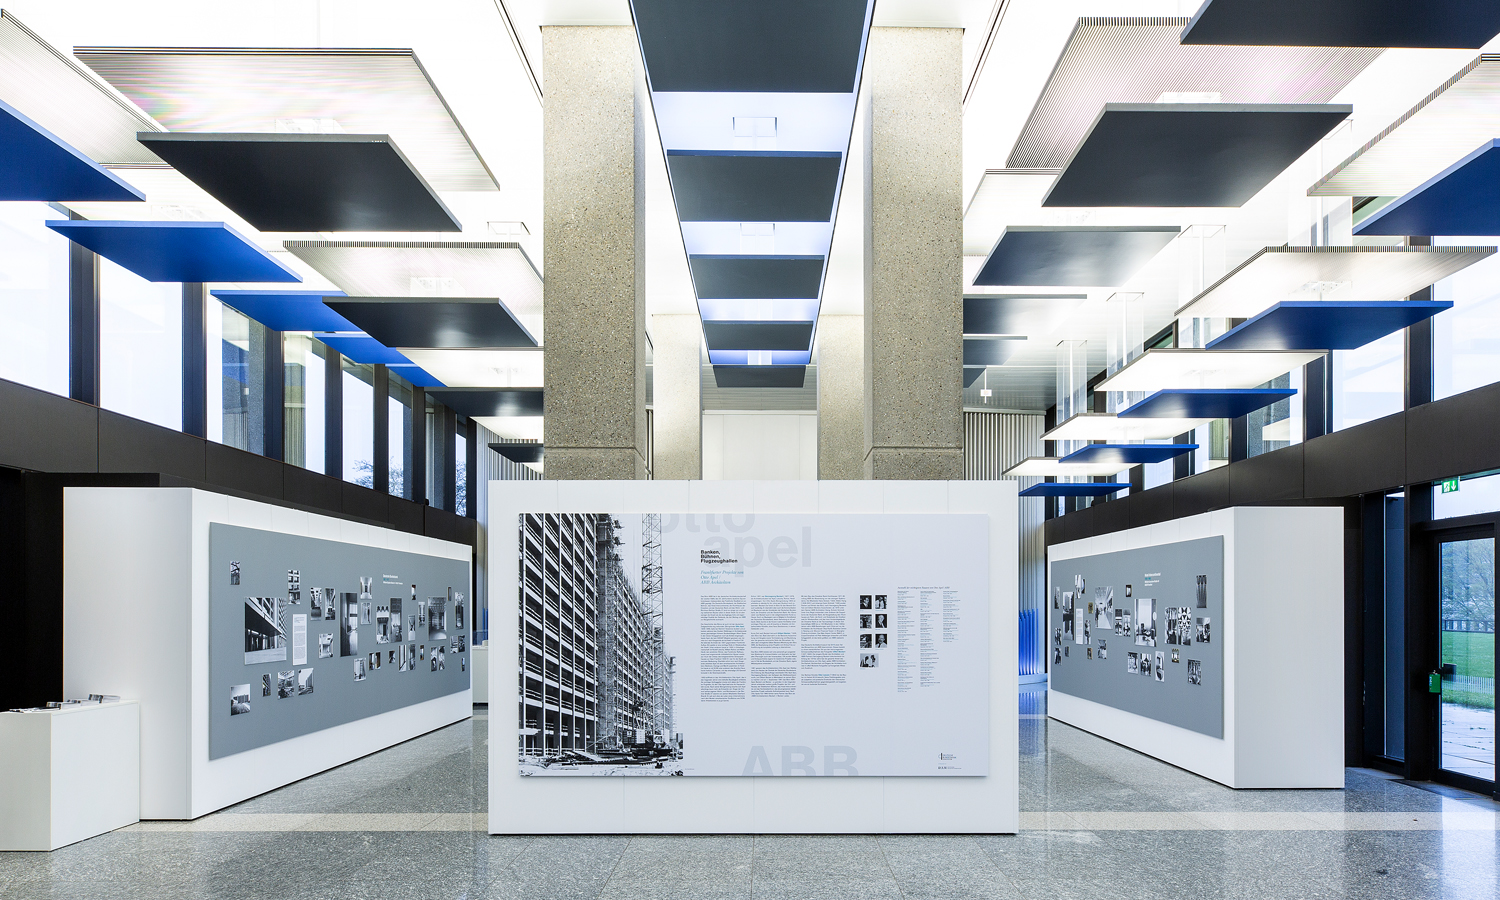 Mila-wall Wandmodule in der Deutschen Bundesbank in Frankfurt